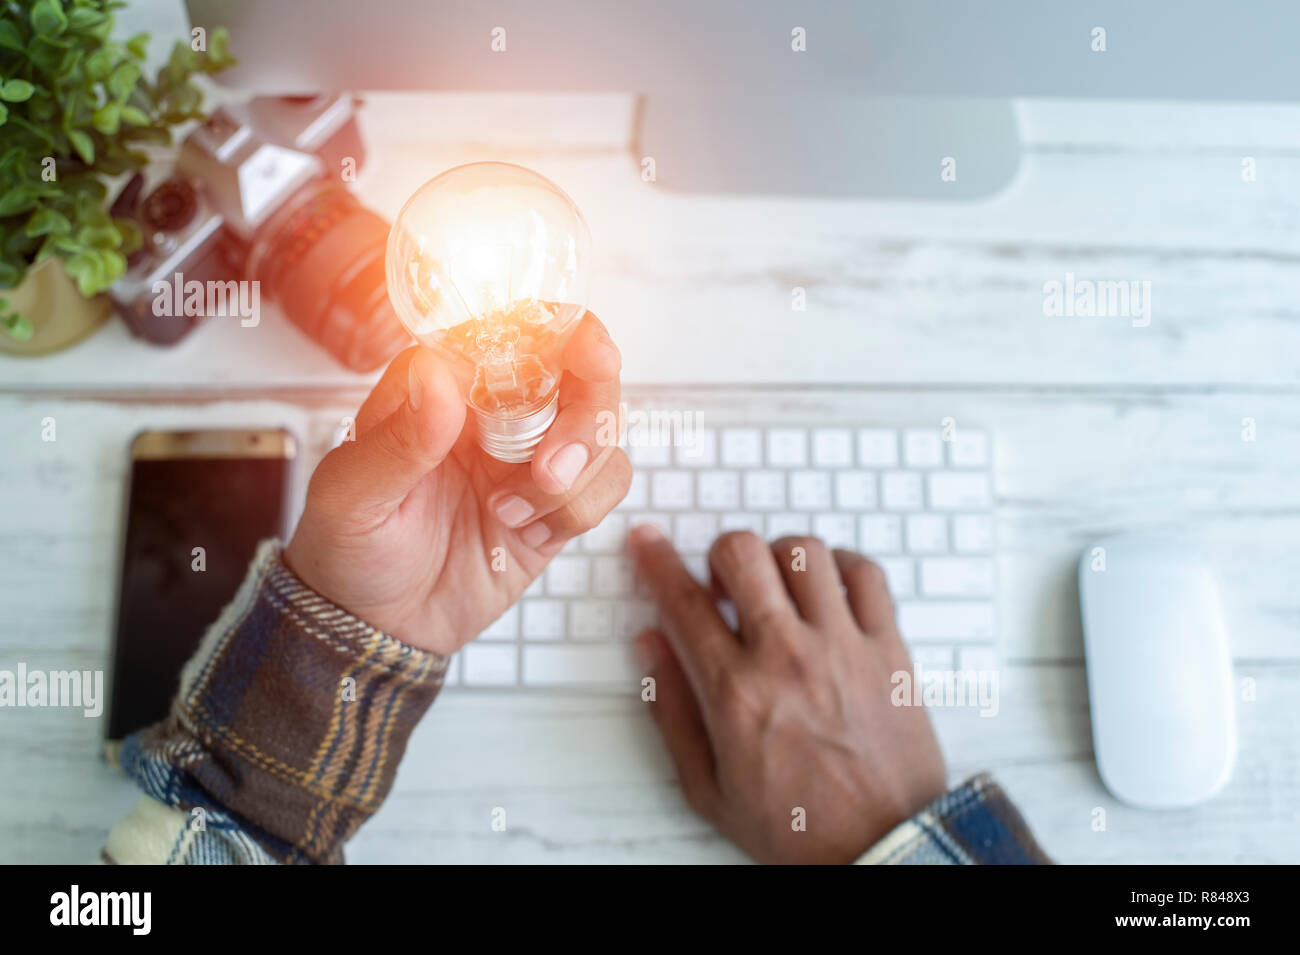 Mobile bulbs with innovative ideas and creativity. - Stock Image